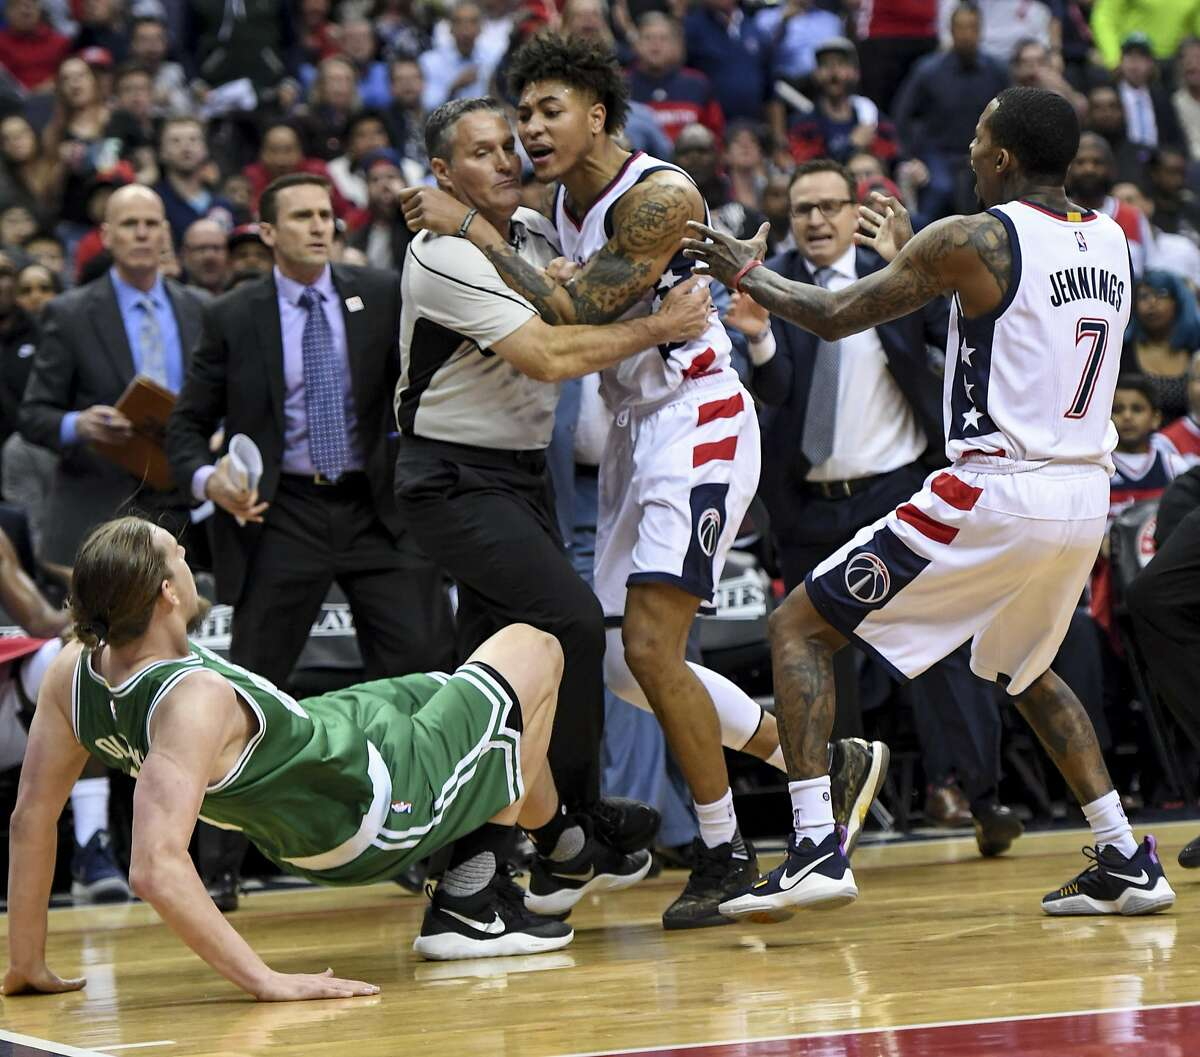 NBA referee Monty McCutchen holds back Wizards forward Kelly Oubre Jr. as he goes after Celtics center Kelly Olynyk during Game 3. Oubre was ejected from the game. Must credit: Washington Post photo by Jonathan Newton